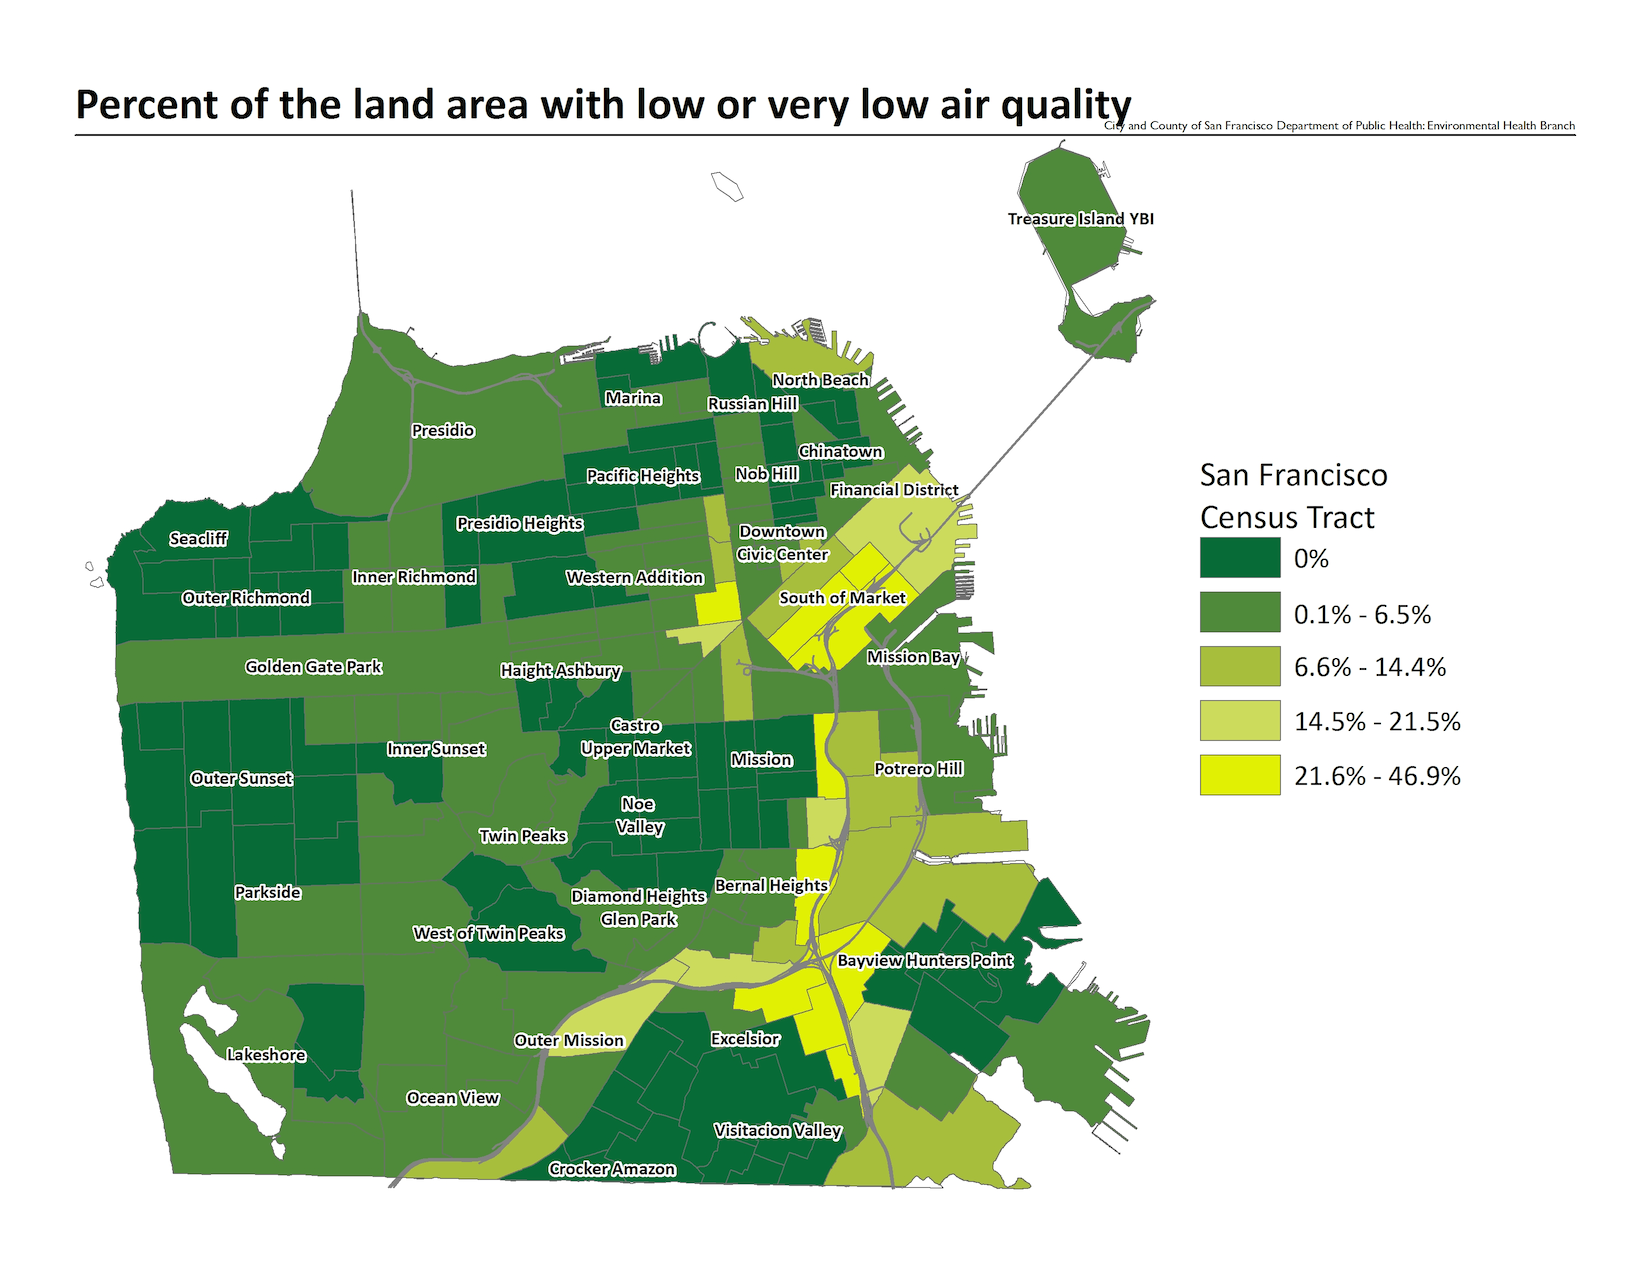 Map of the percent of the land area with low or very low air quality, by census tract. The neighborhoods with the highest concentration of PM2.5 and other particulates are along the 280 and 101 freeways.